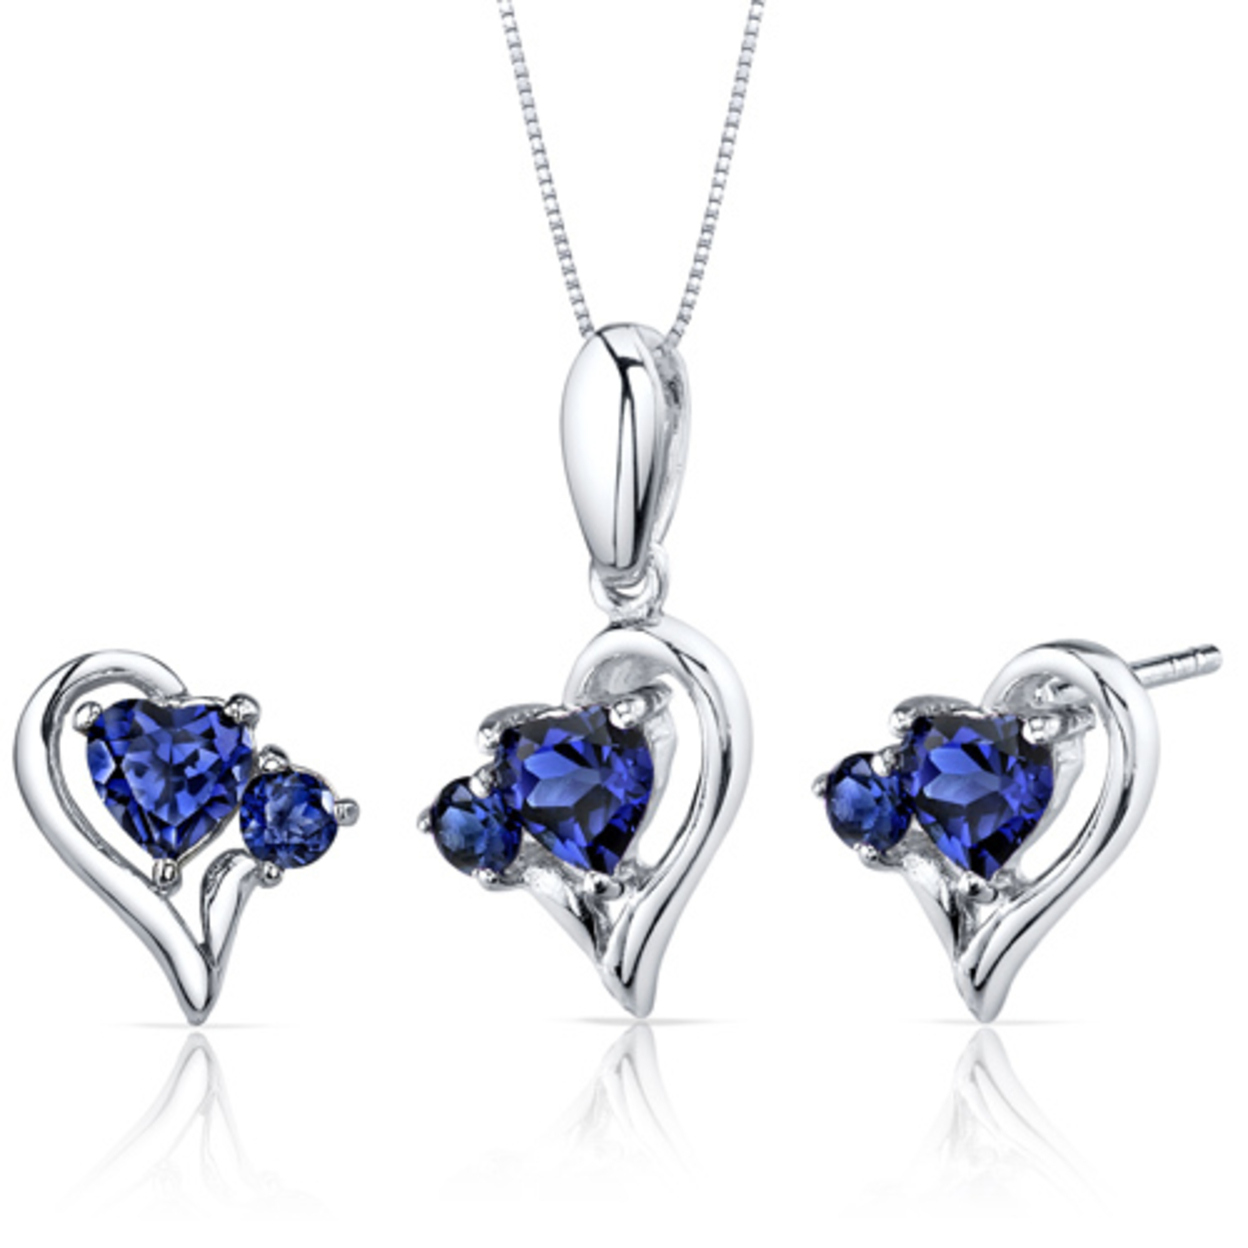 Love And Beauty 2.25 Carats Heart Shape Sterling Silver Sapphire Pendant Earrings Set Style Ss3780